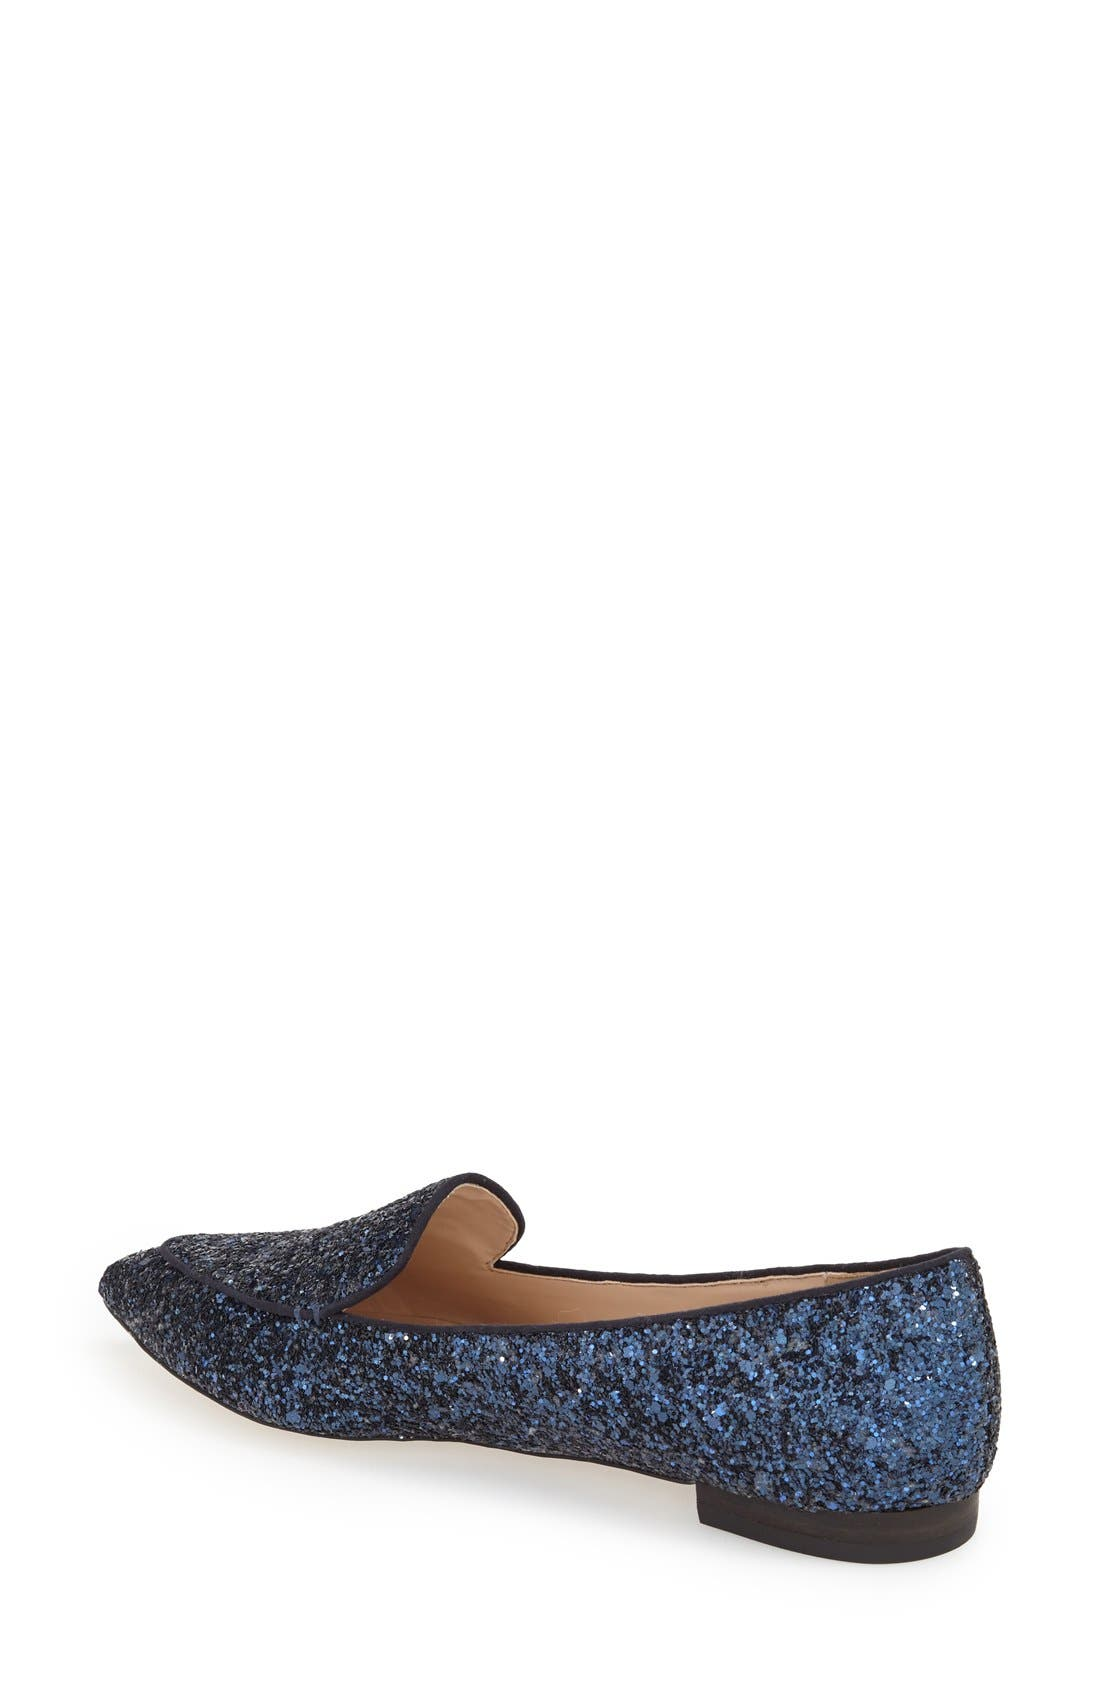 'Cammila' Pointy Toe Loafer,                             Alternate thumbnail 21, color,